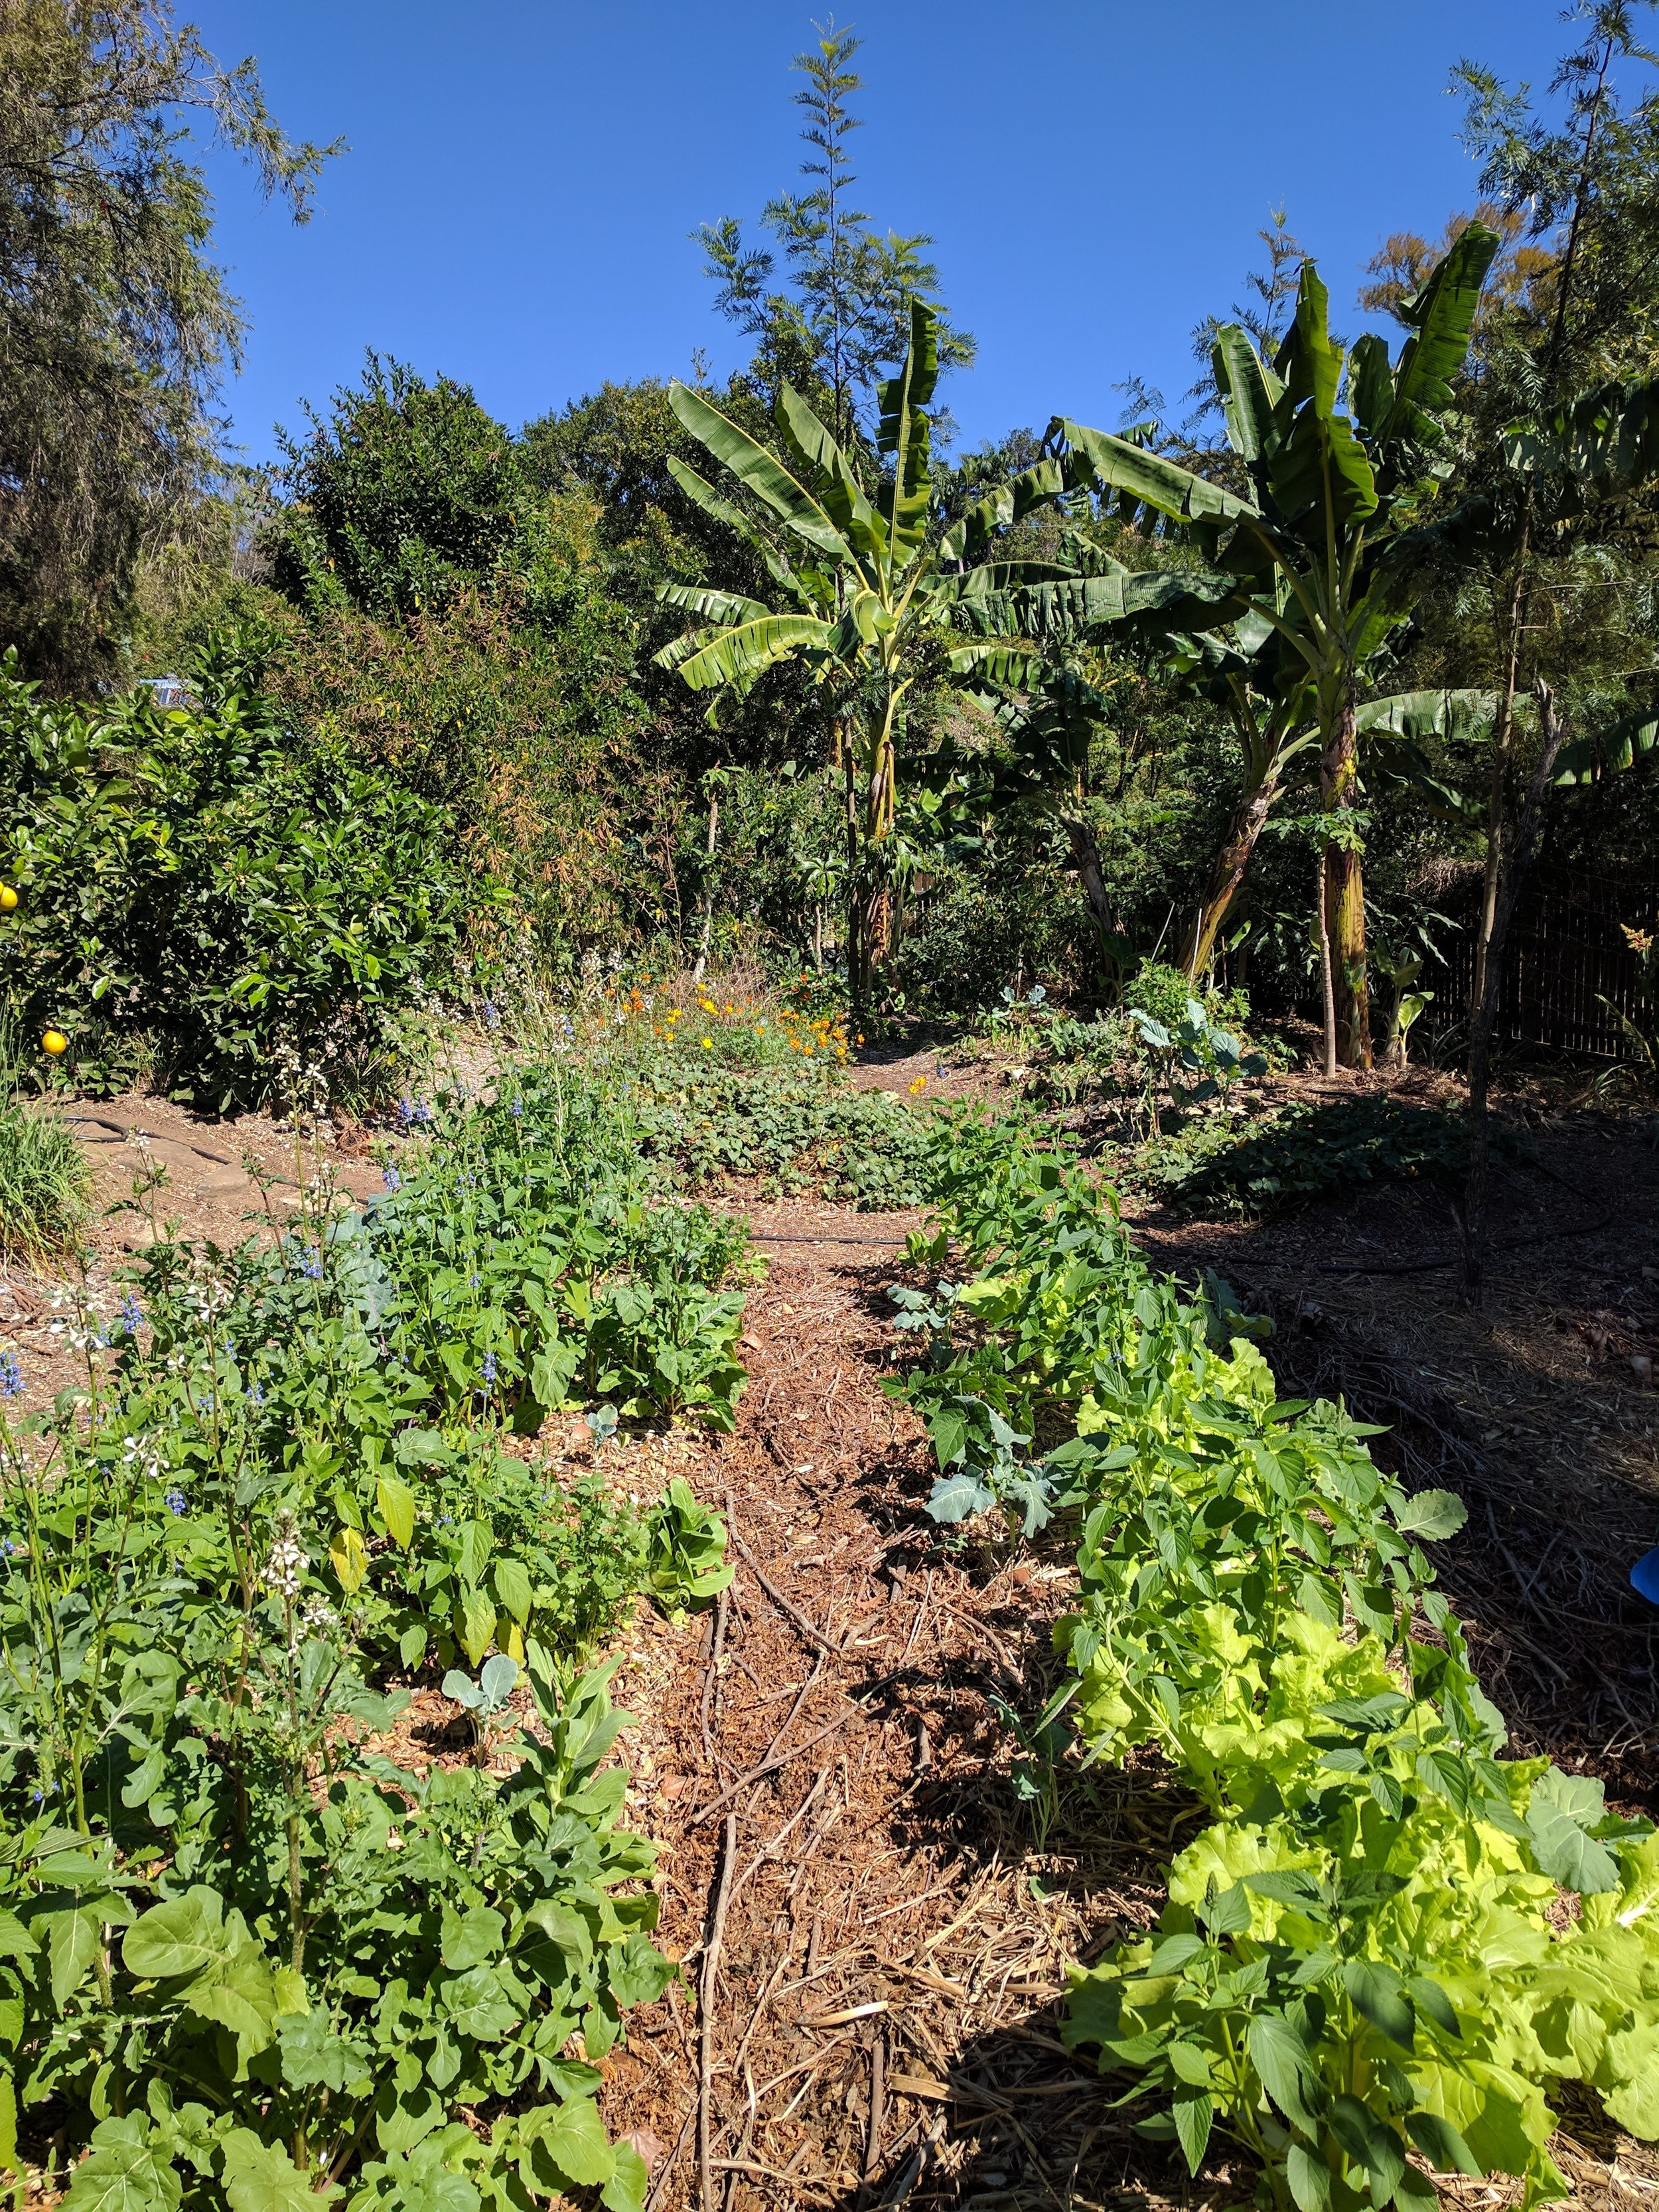 Syntropic Agriculture Farming Permaculture Design.jpg